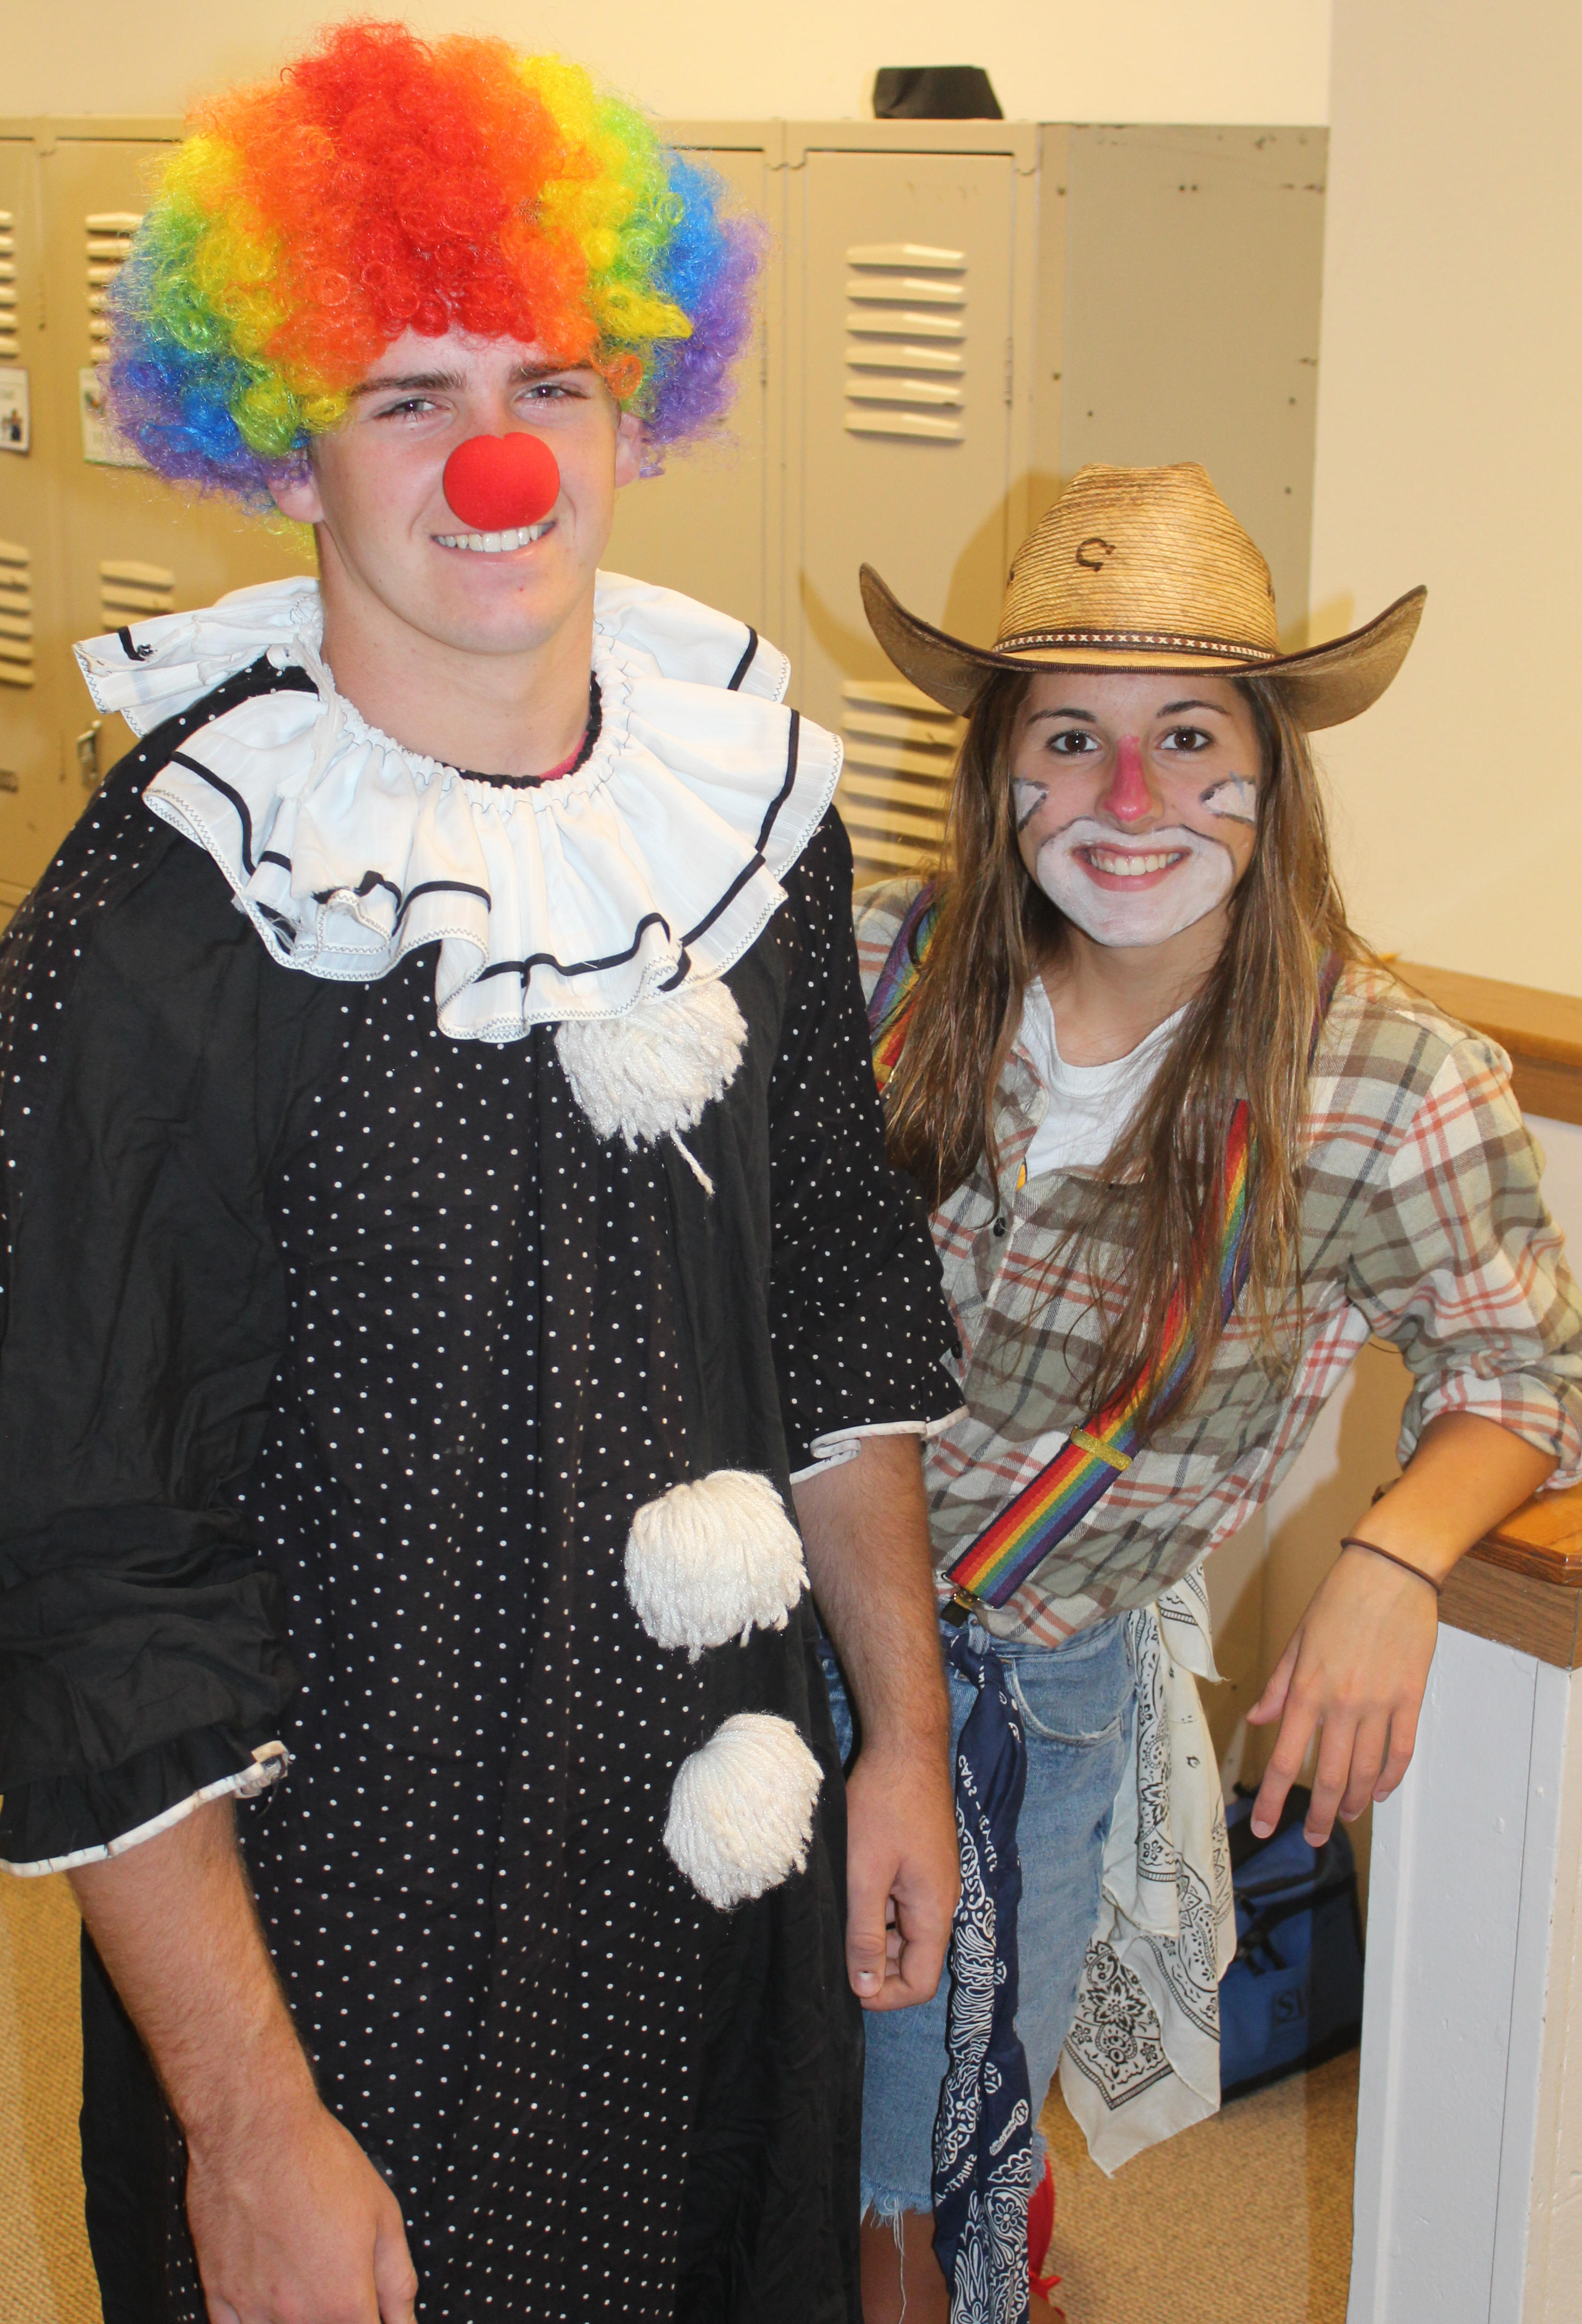 Homecoming Clown Day 2014 - Nathaniel and Kelli